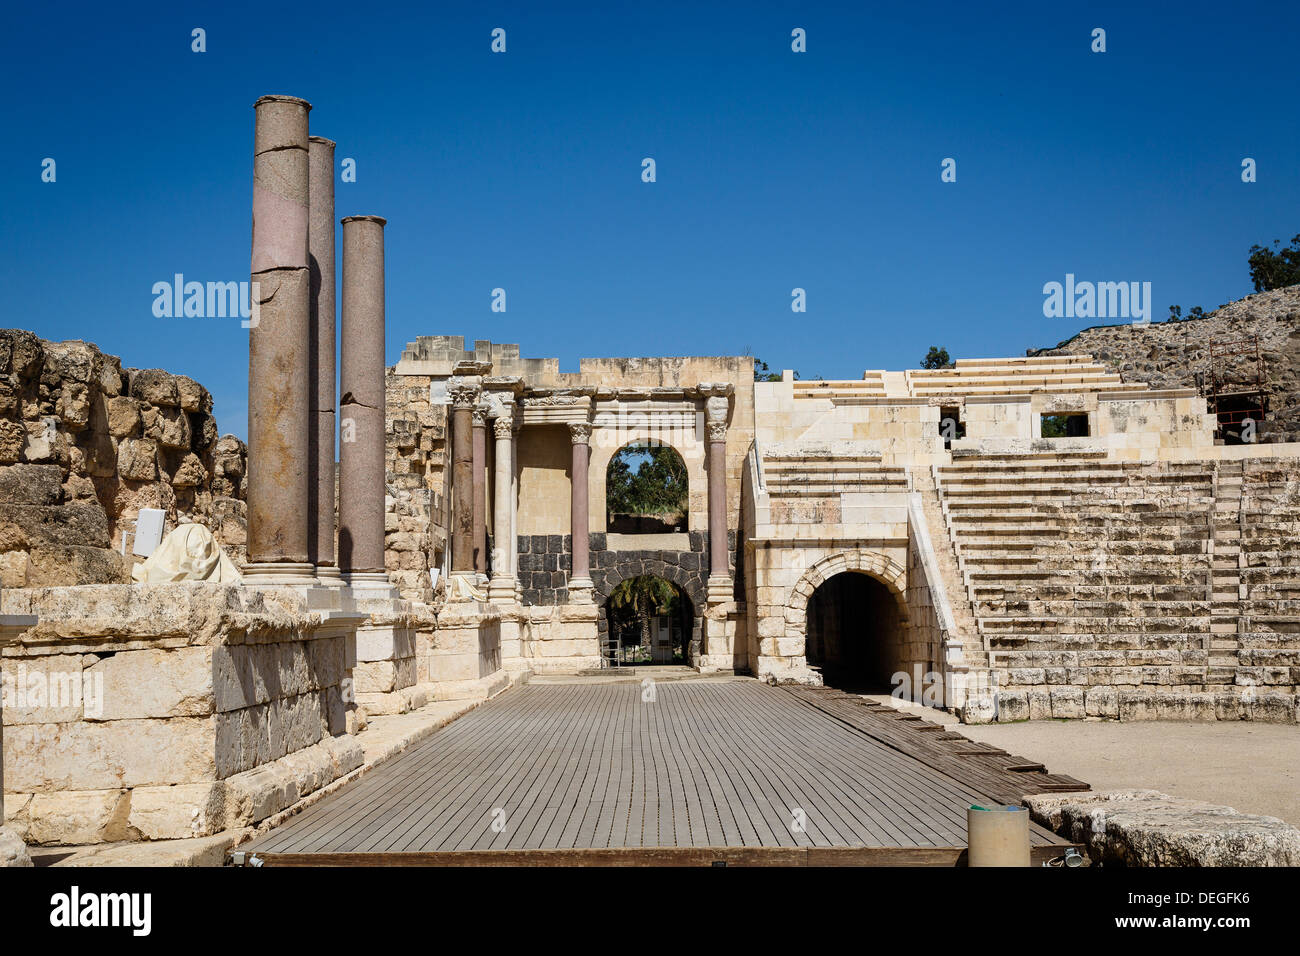 Amphitheatre, ruins of the Roman-Byzantine city of Scythopolis, Tel Beit Shean National Park, Beit Shean, Israel, Middle East - Stock Image